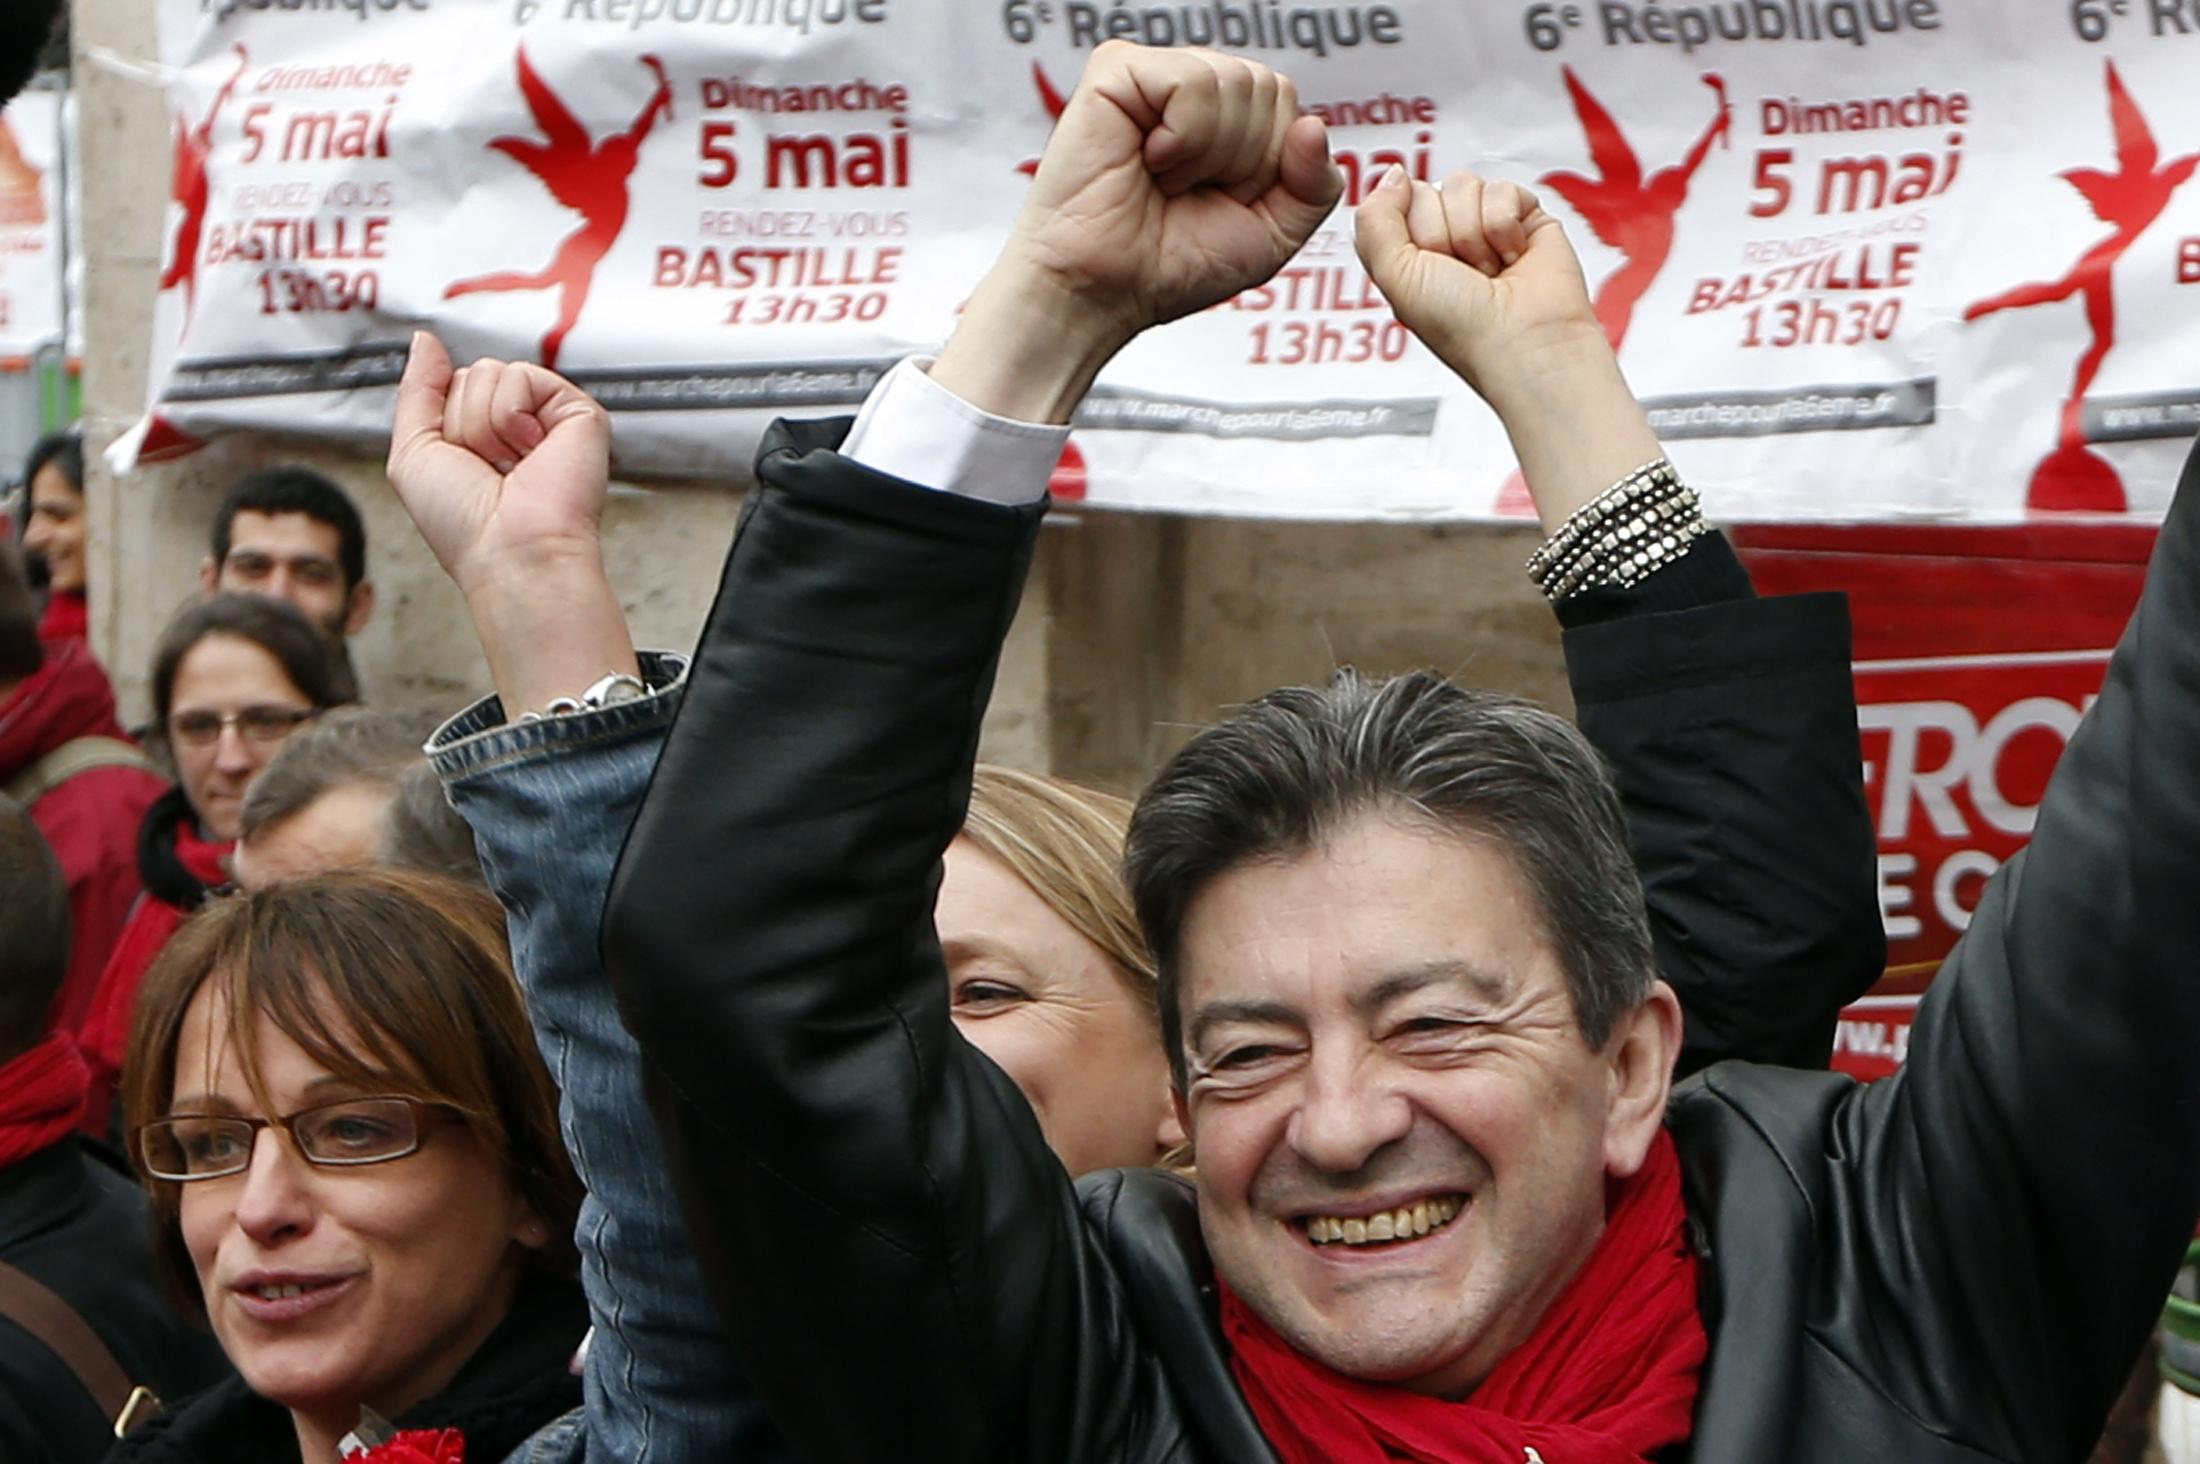 French party leader Jean-Luc Melenchon